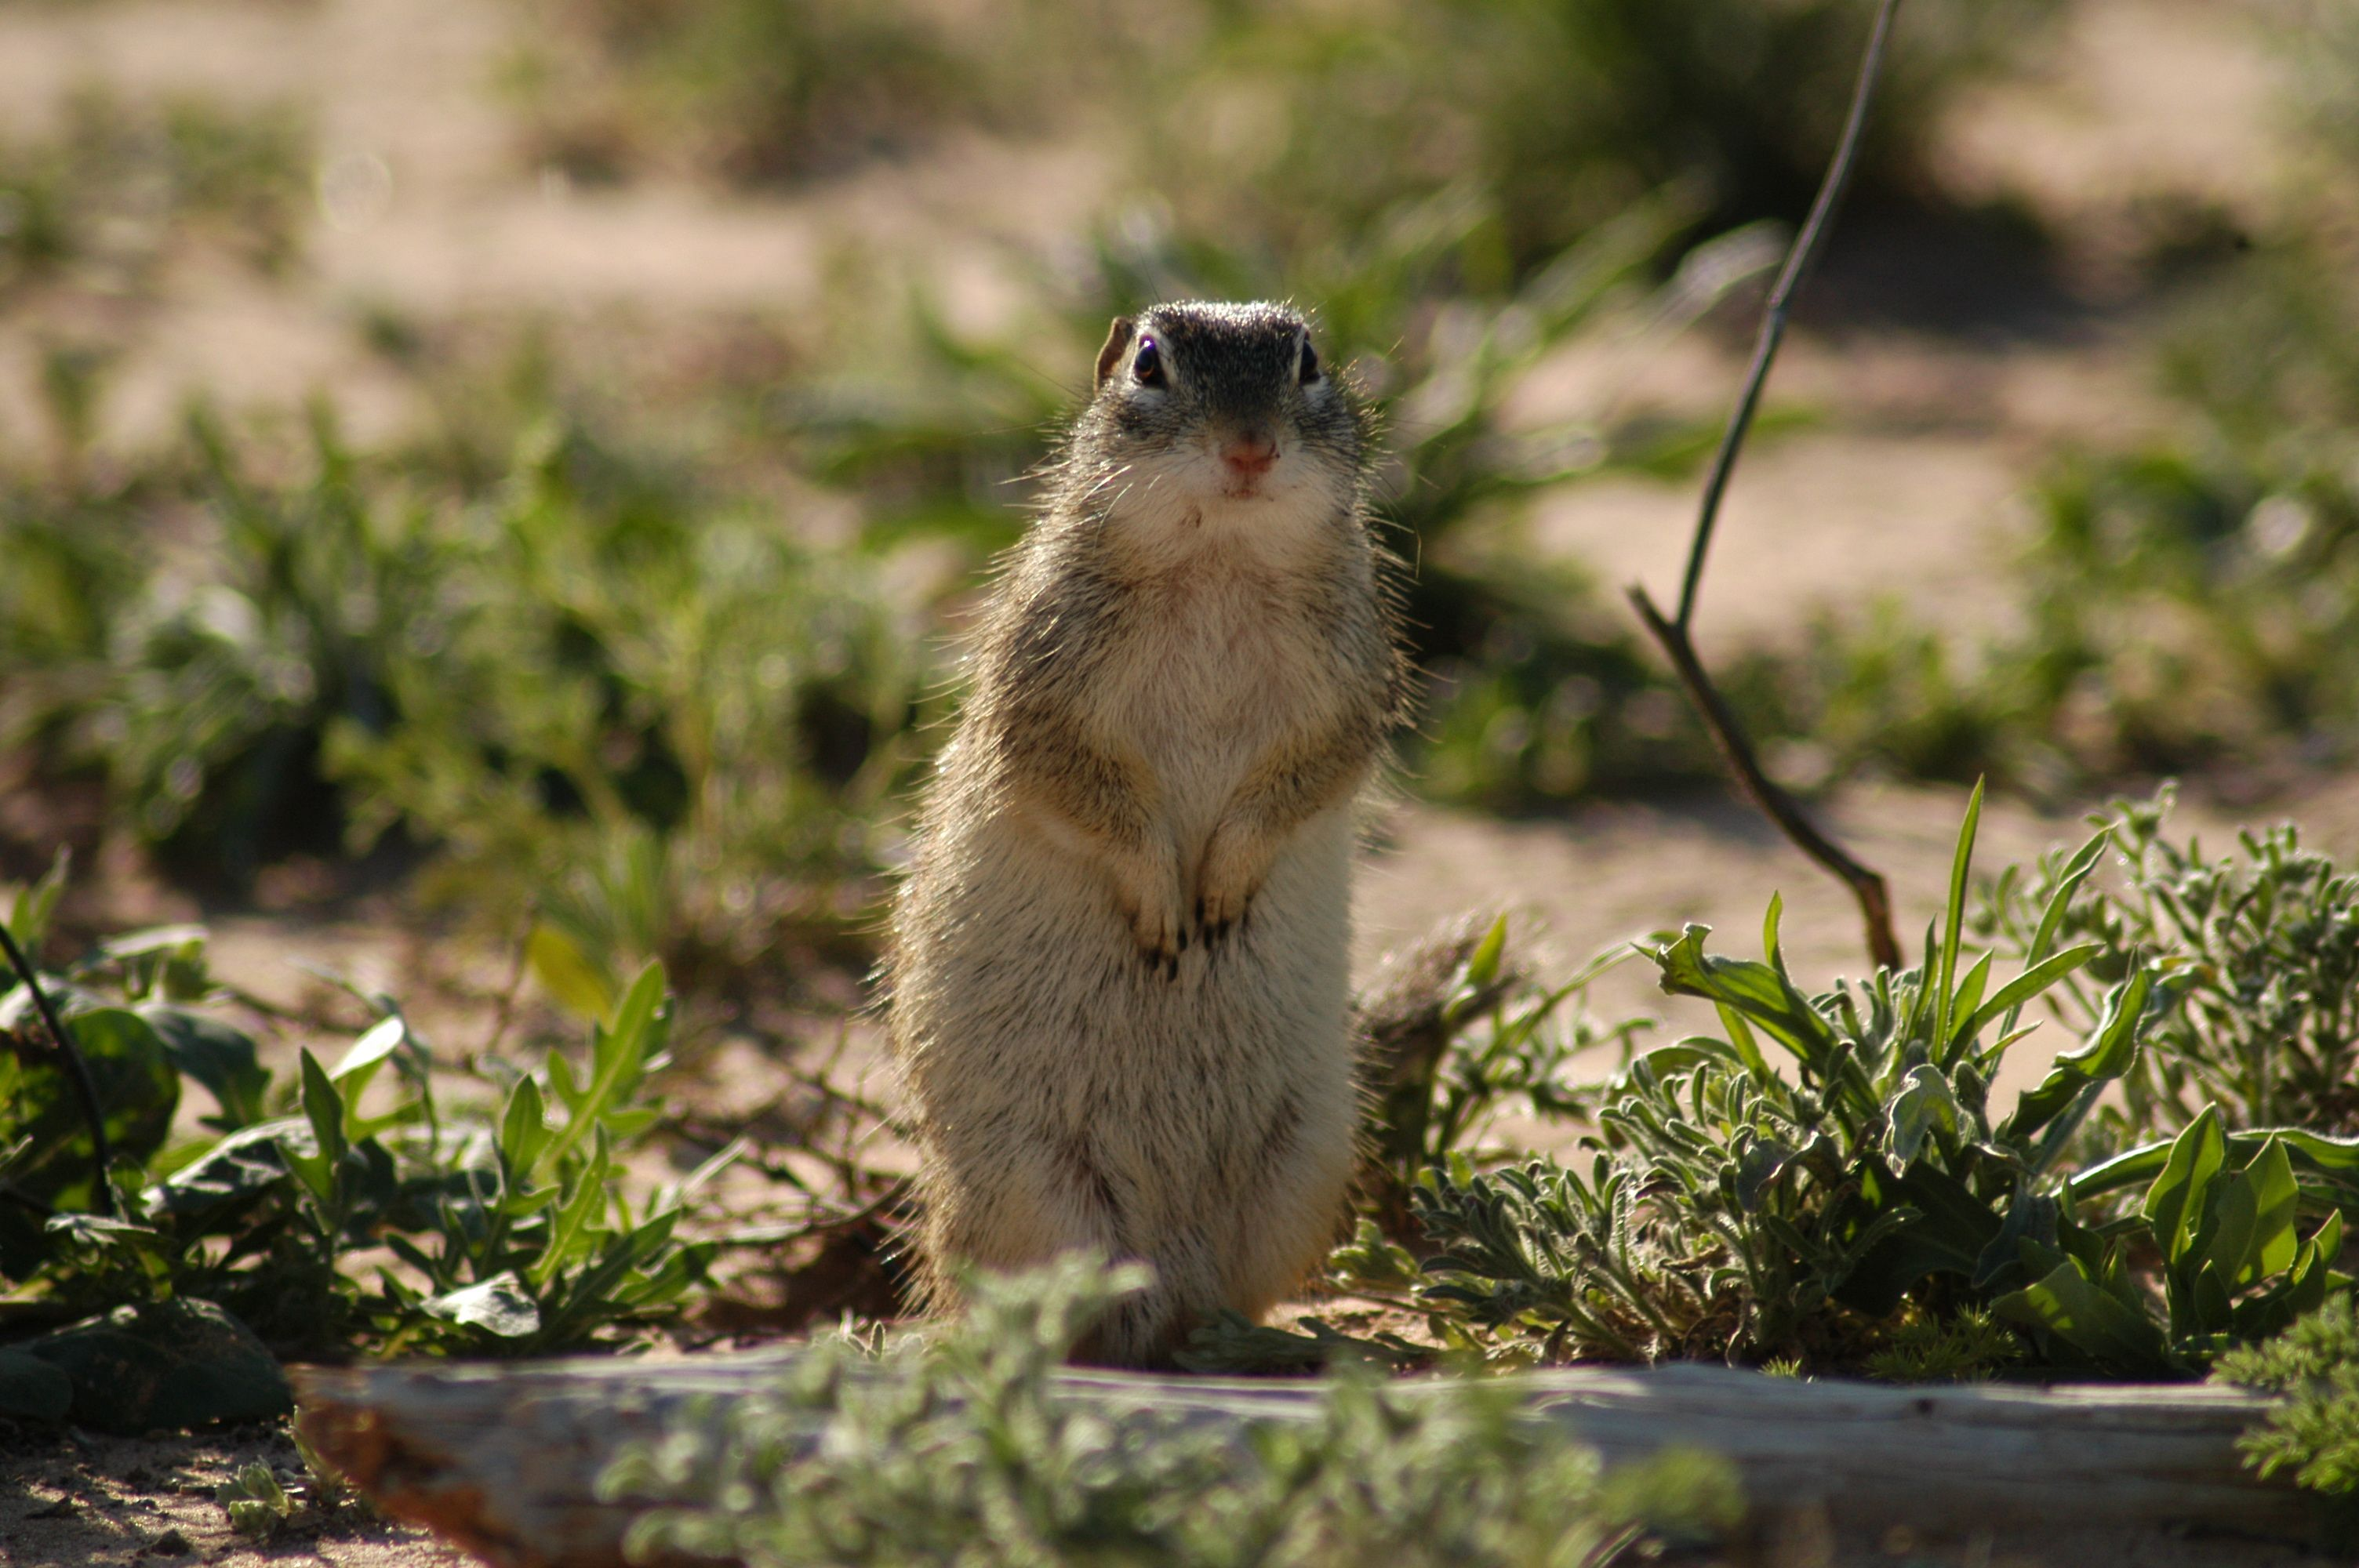 ground squirrels are the only species to truly hibernate